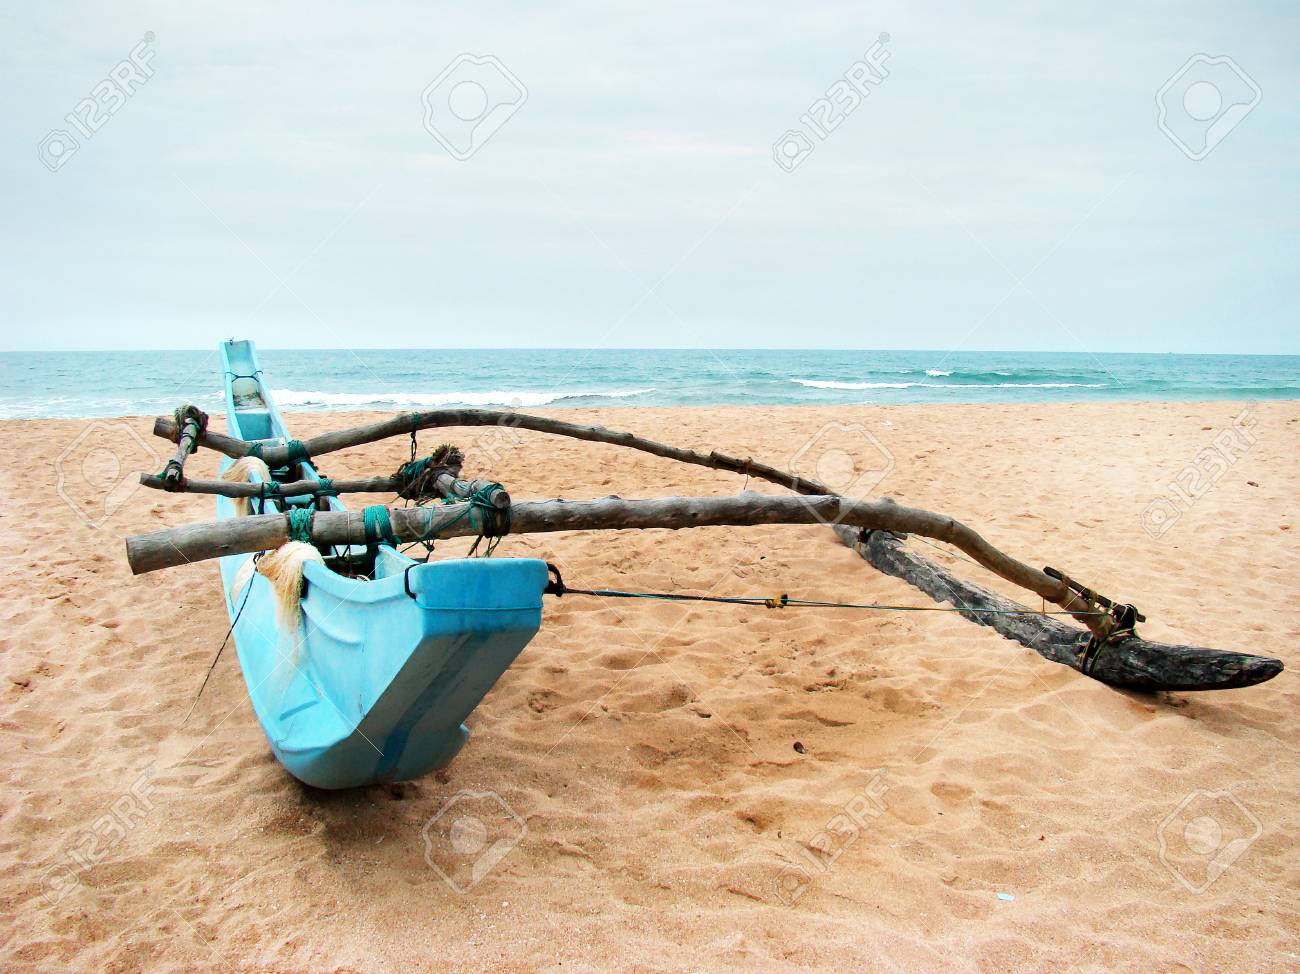 Homemade Single Outrigger Kit for Swagman Canoe on Sandy Beach Overlooking Ocean and Horizon - Summer active sports and recreation. - 101922429